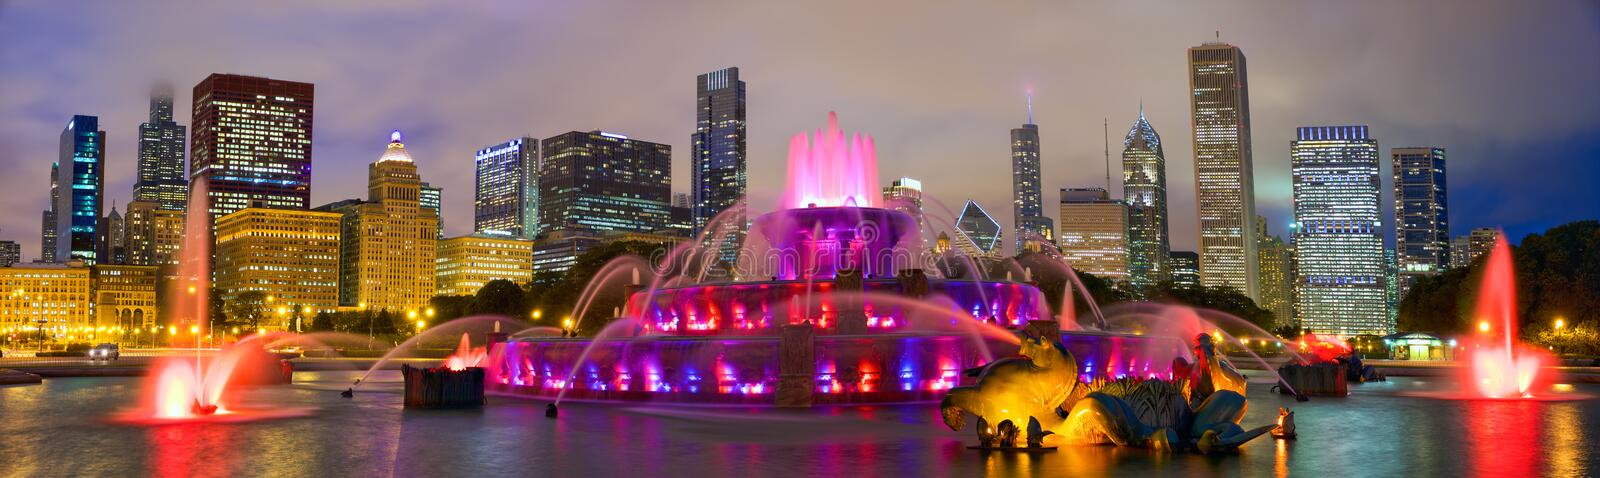 Chicago skyline and Buckingham Fountain. Chicago skyline panorama with Buckingham Fountain at night, United States stock image